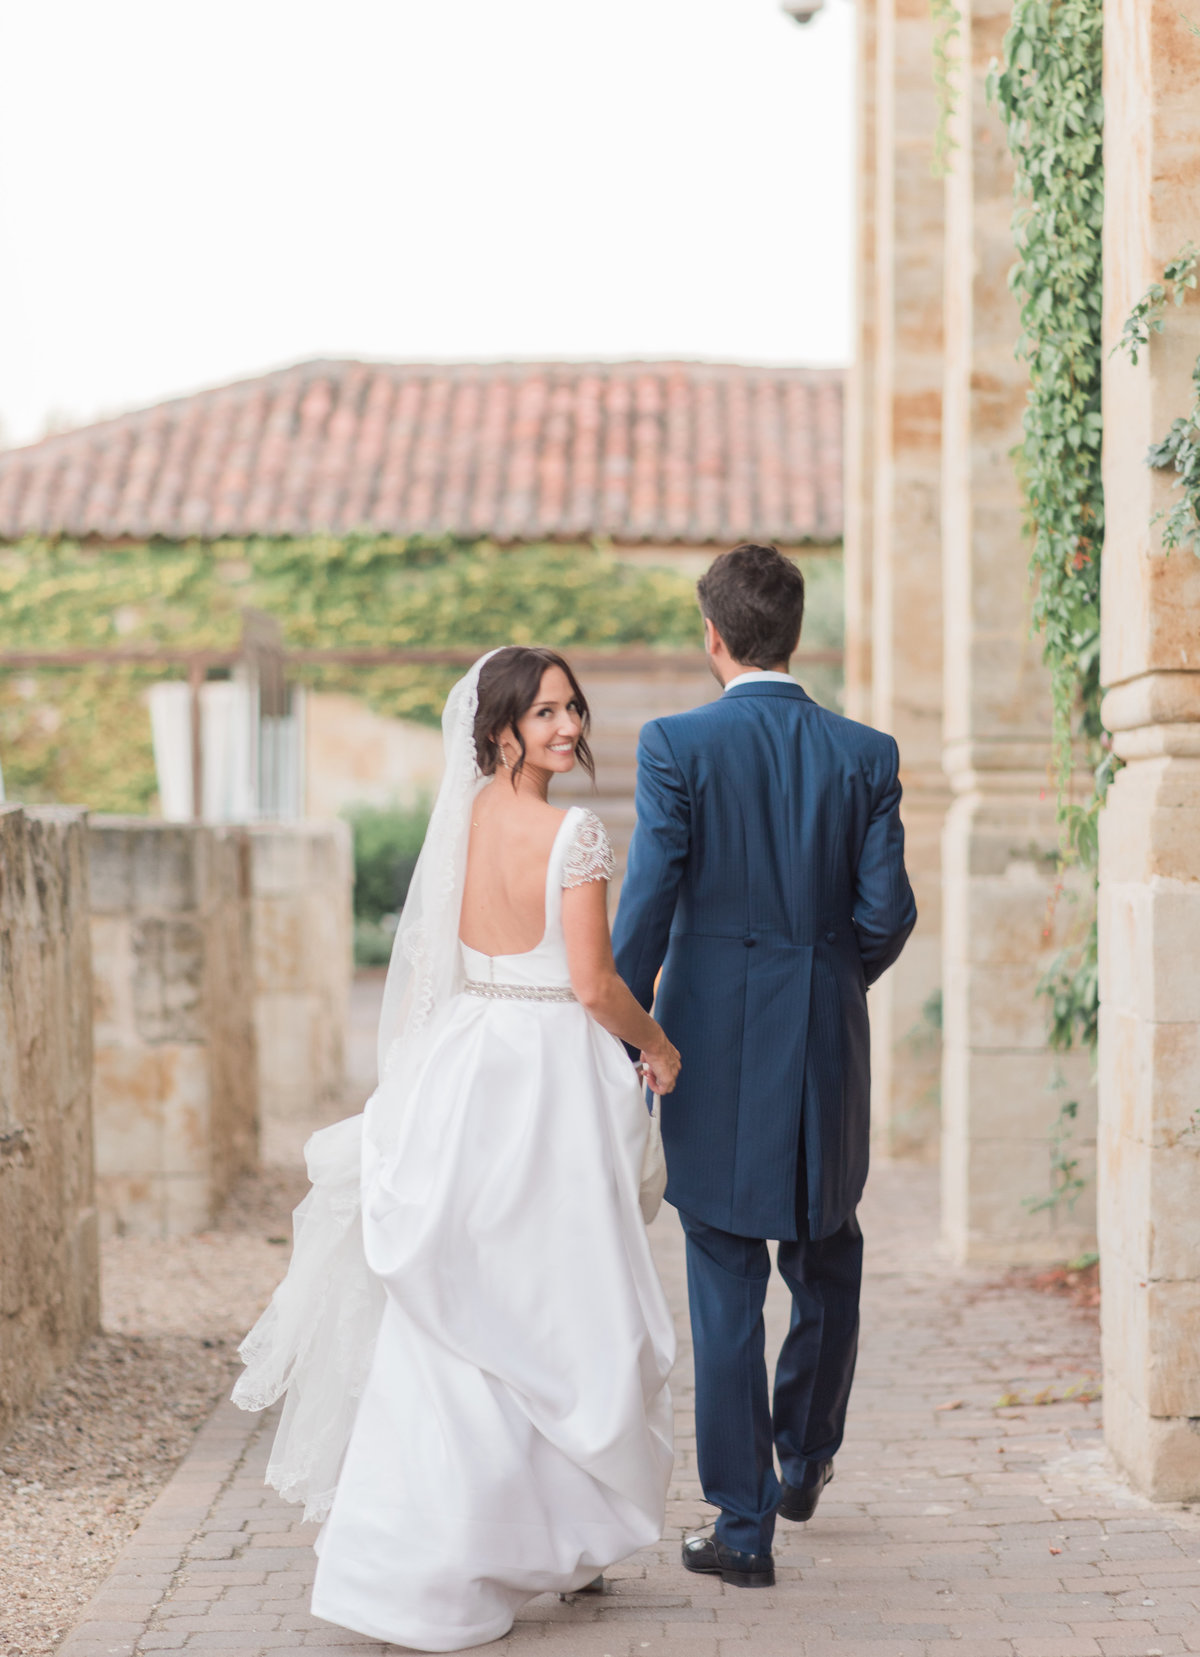 Salamanca boda wedding destination photography